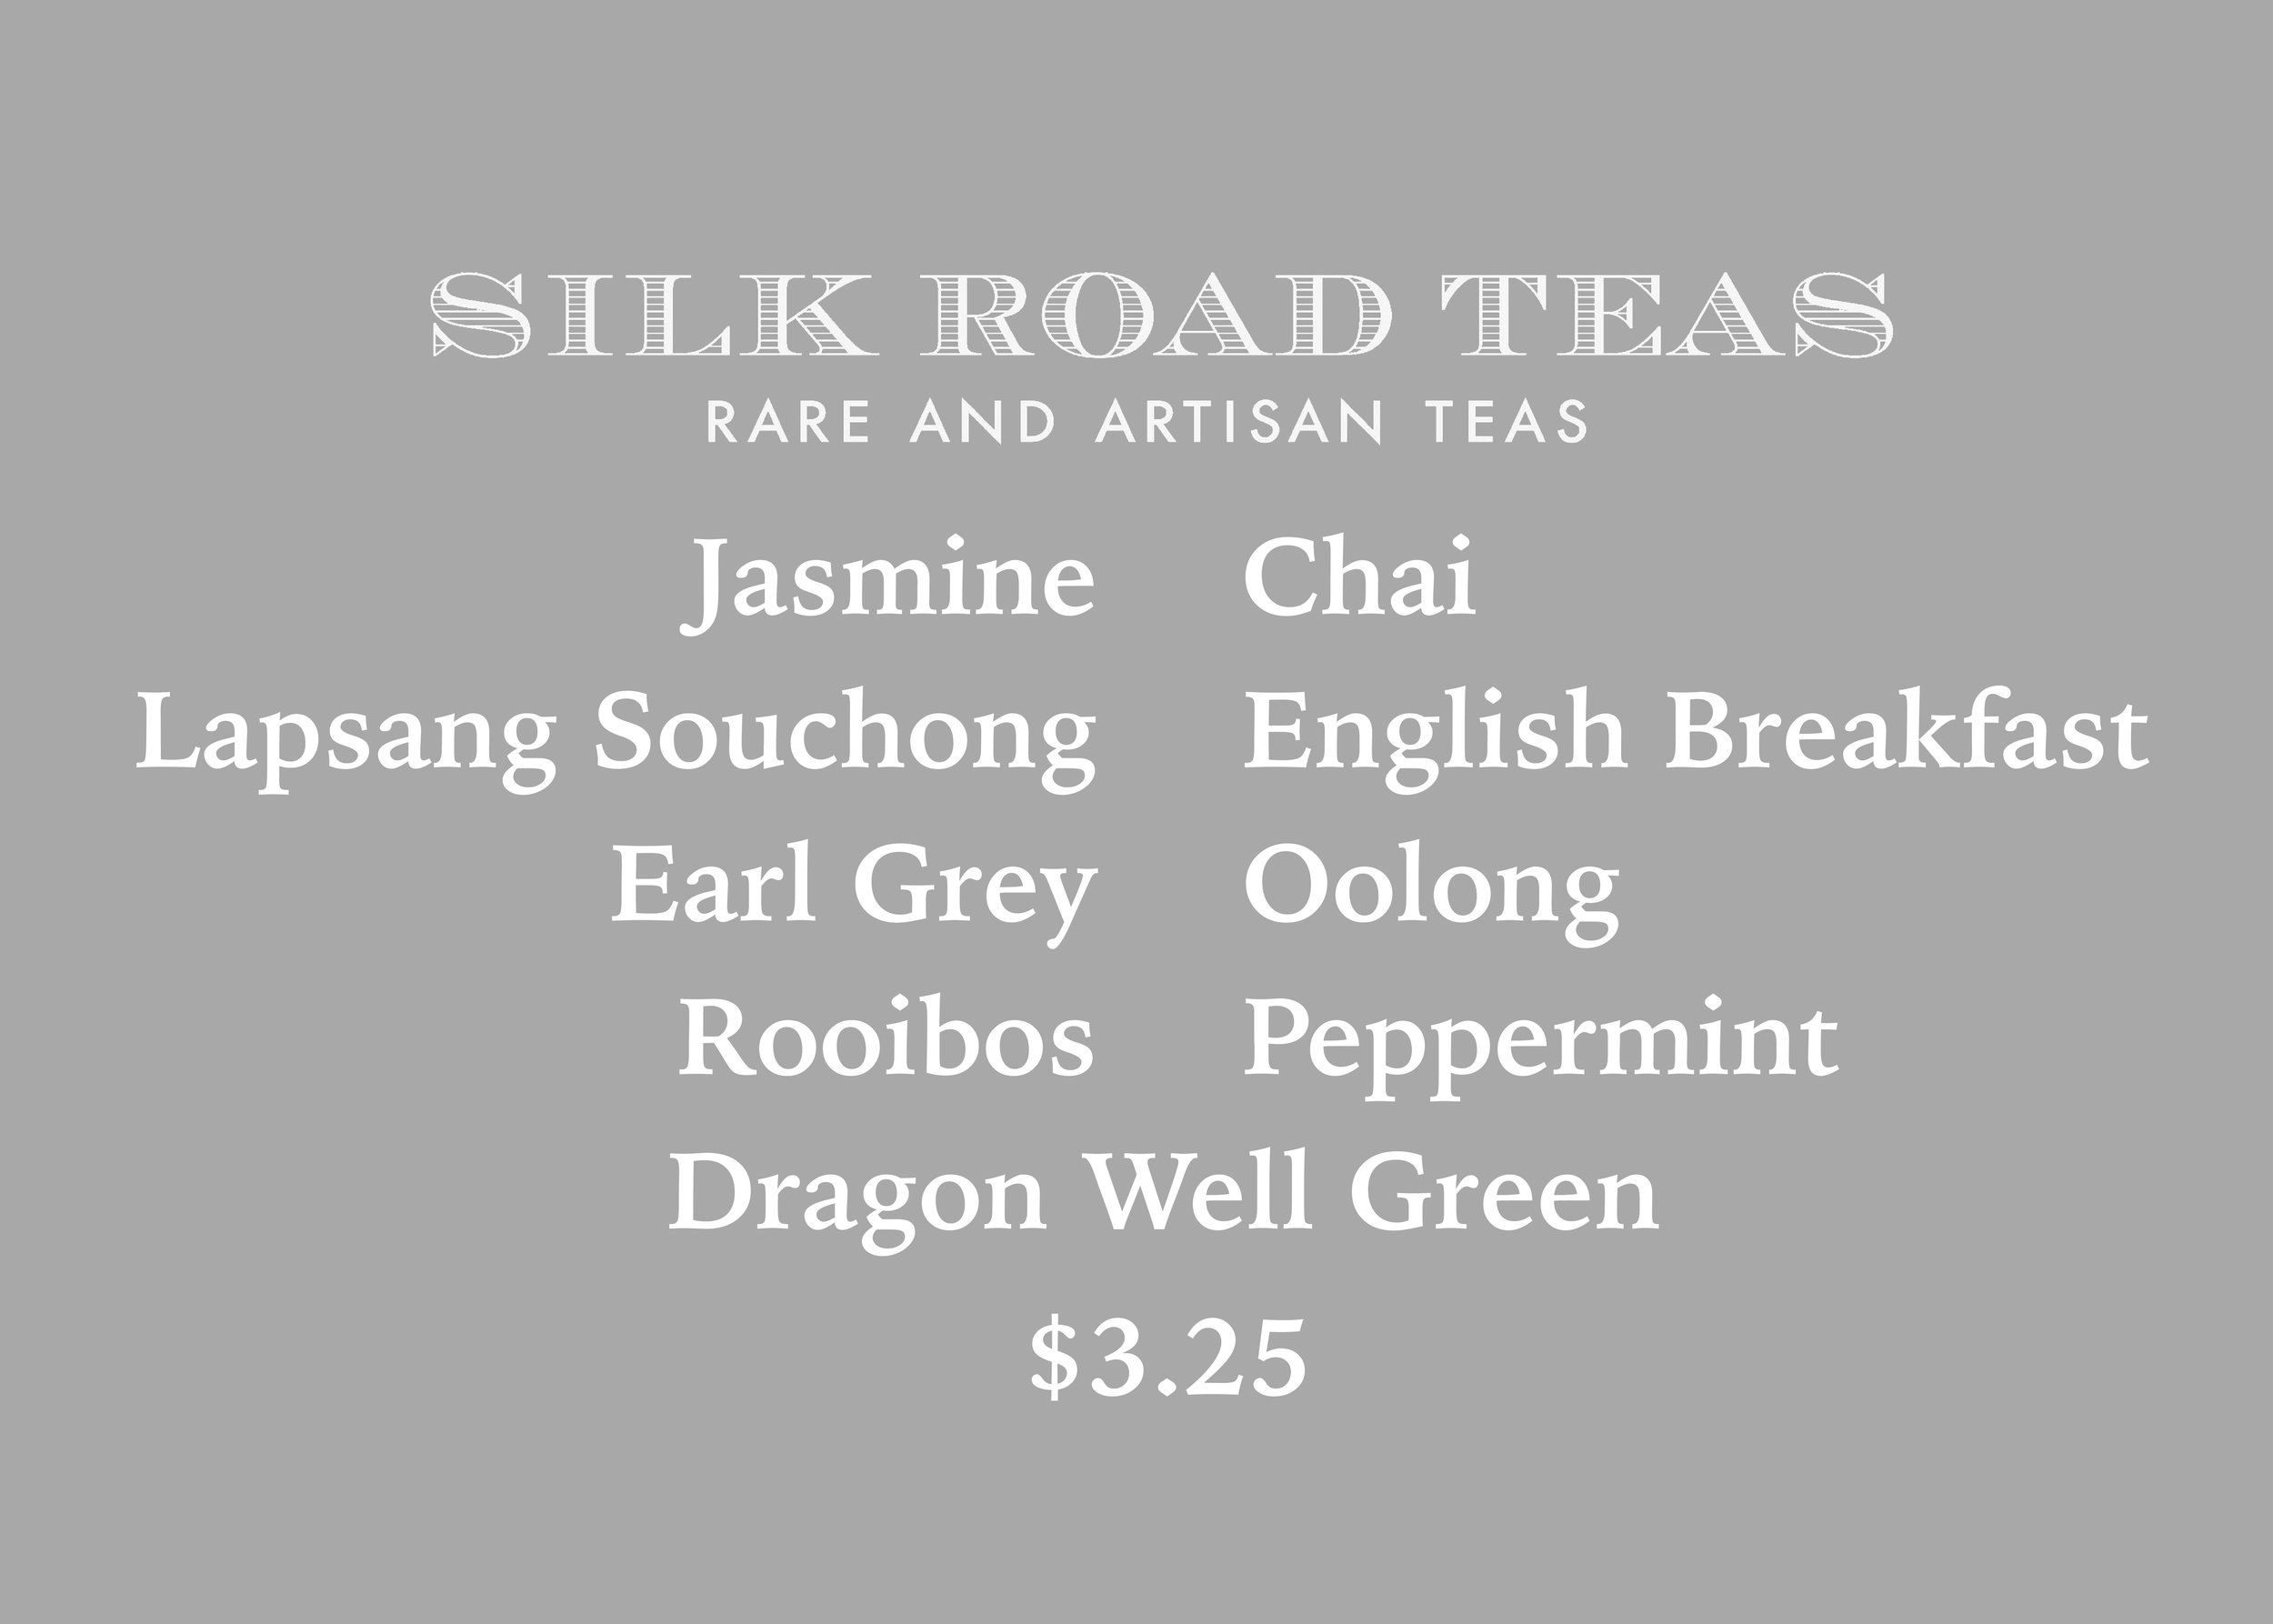 mhbb silk road tea signs.jpg